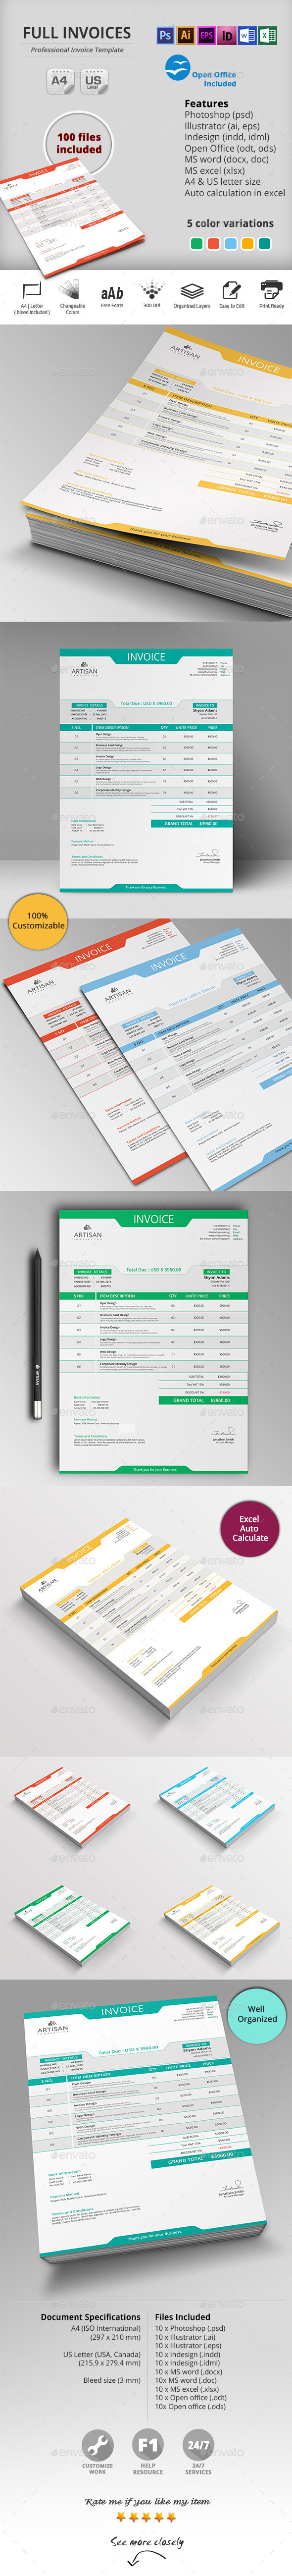 GraphicRiver Invoice 10498011